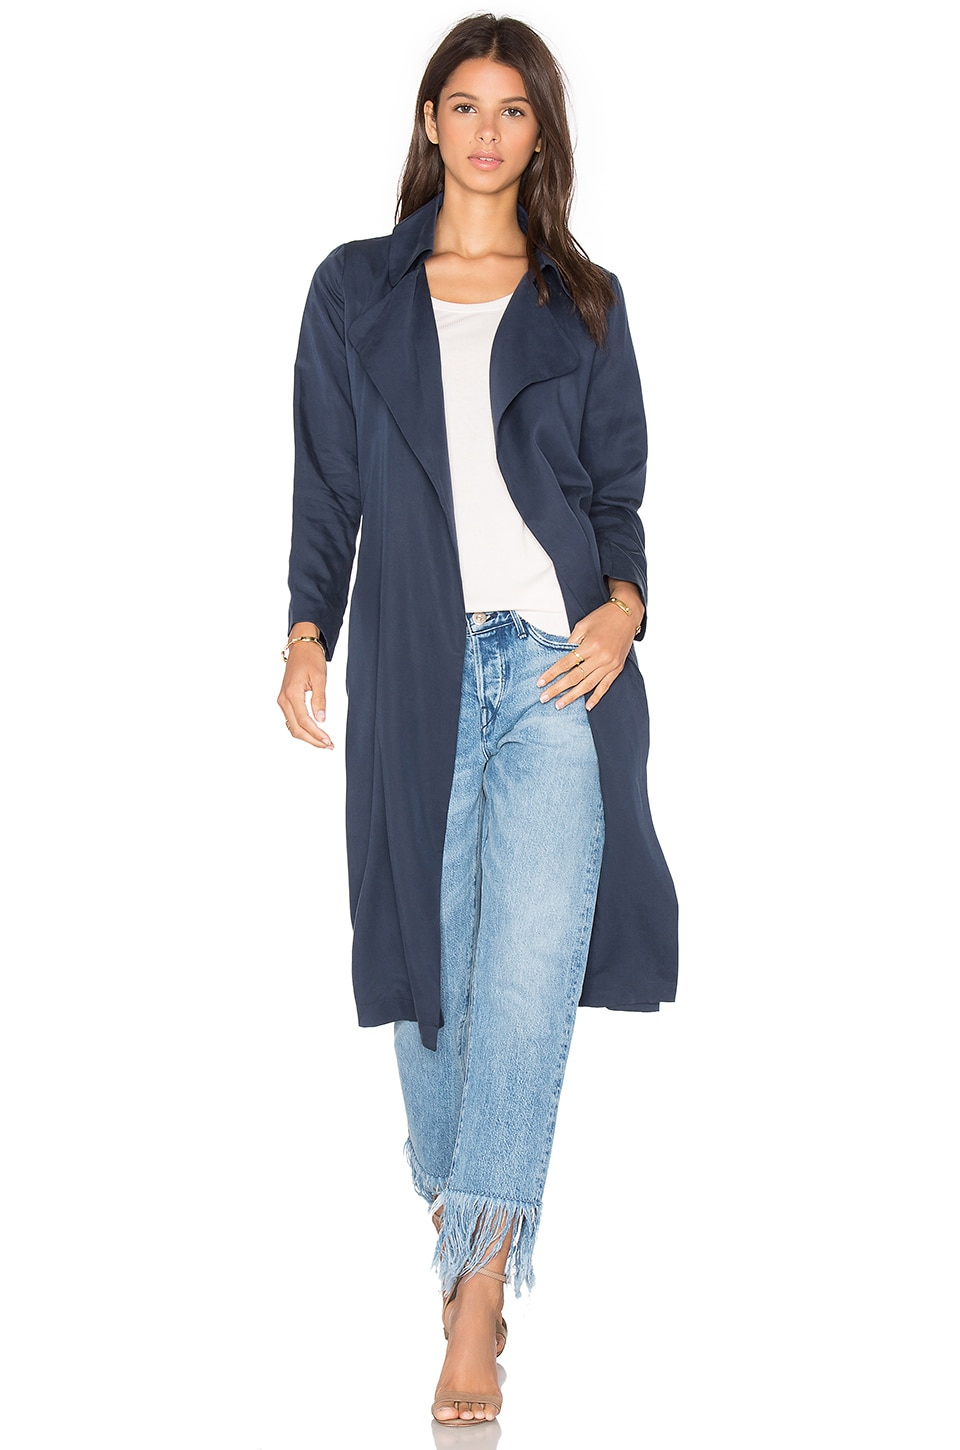 BLAQUE LABEL Duster Coat in Dark Denim